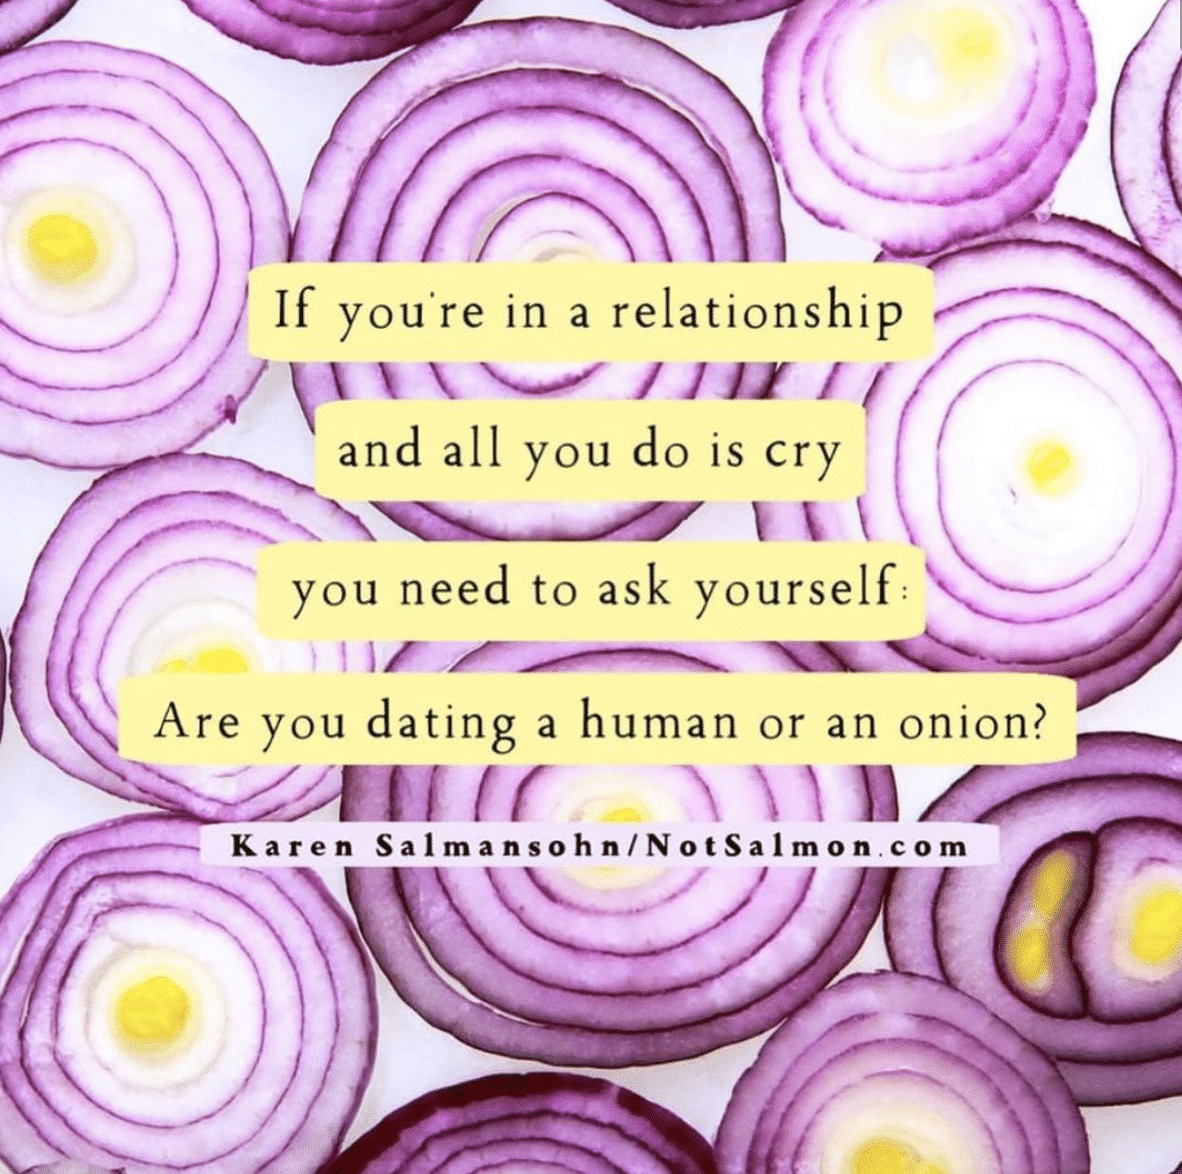 quote relationship cry dating human or onion